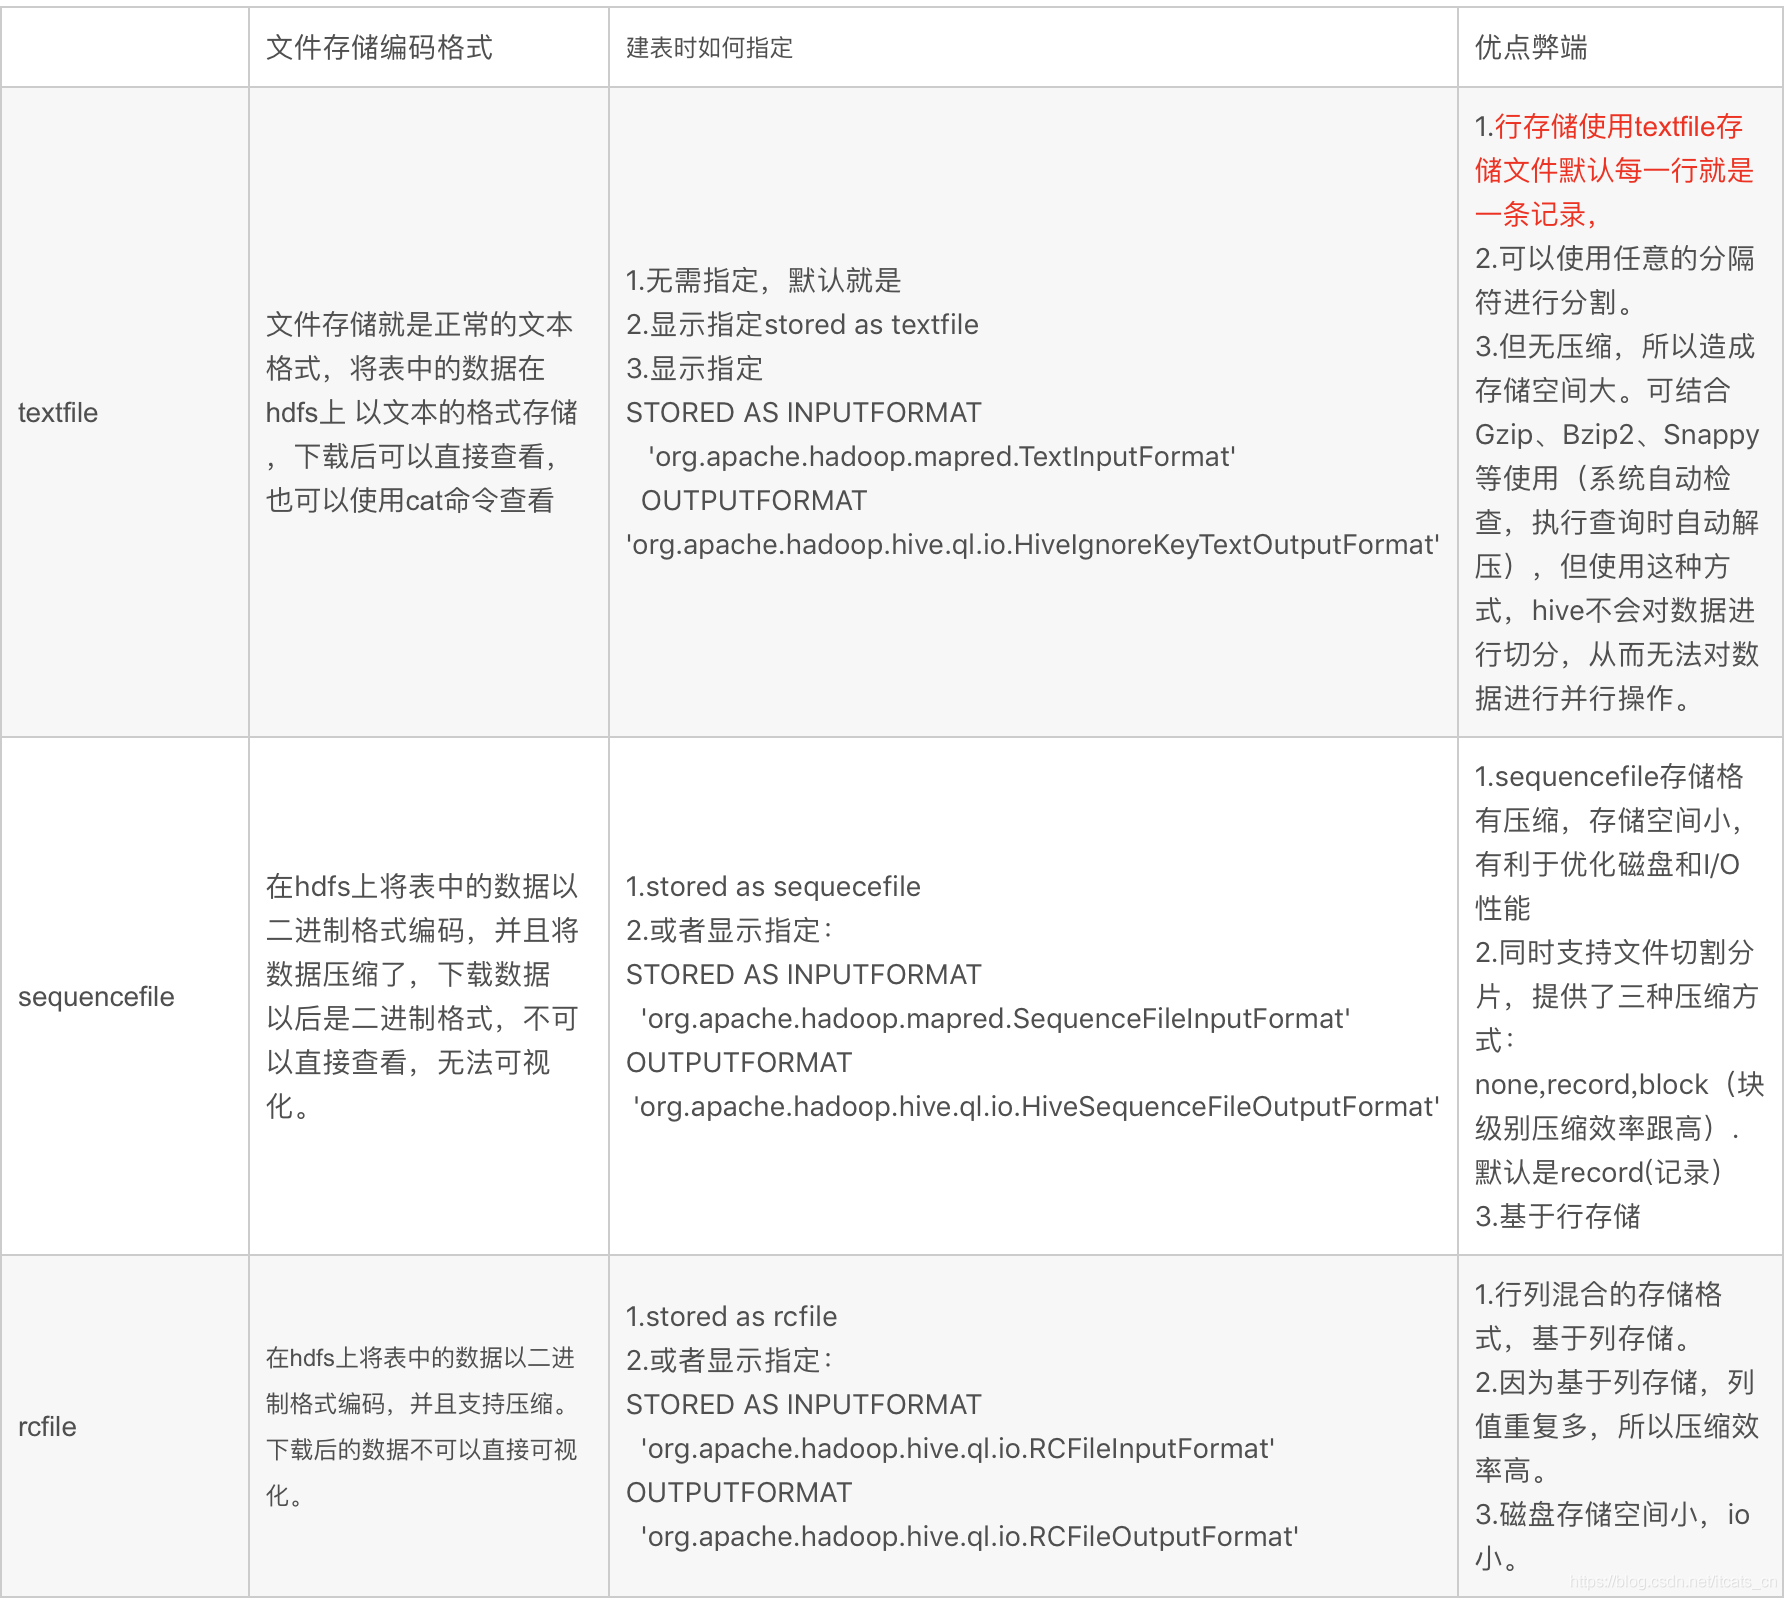 hive 中的压缩格式 RCFile 、TextFile、SequenceFile各有什么区别?